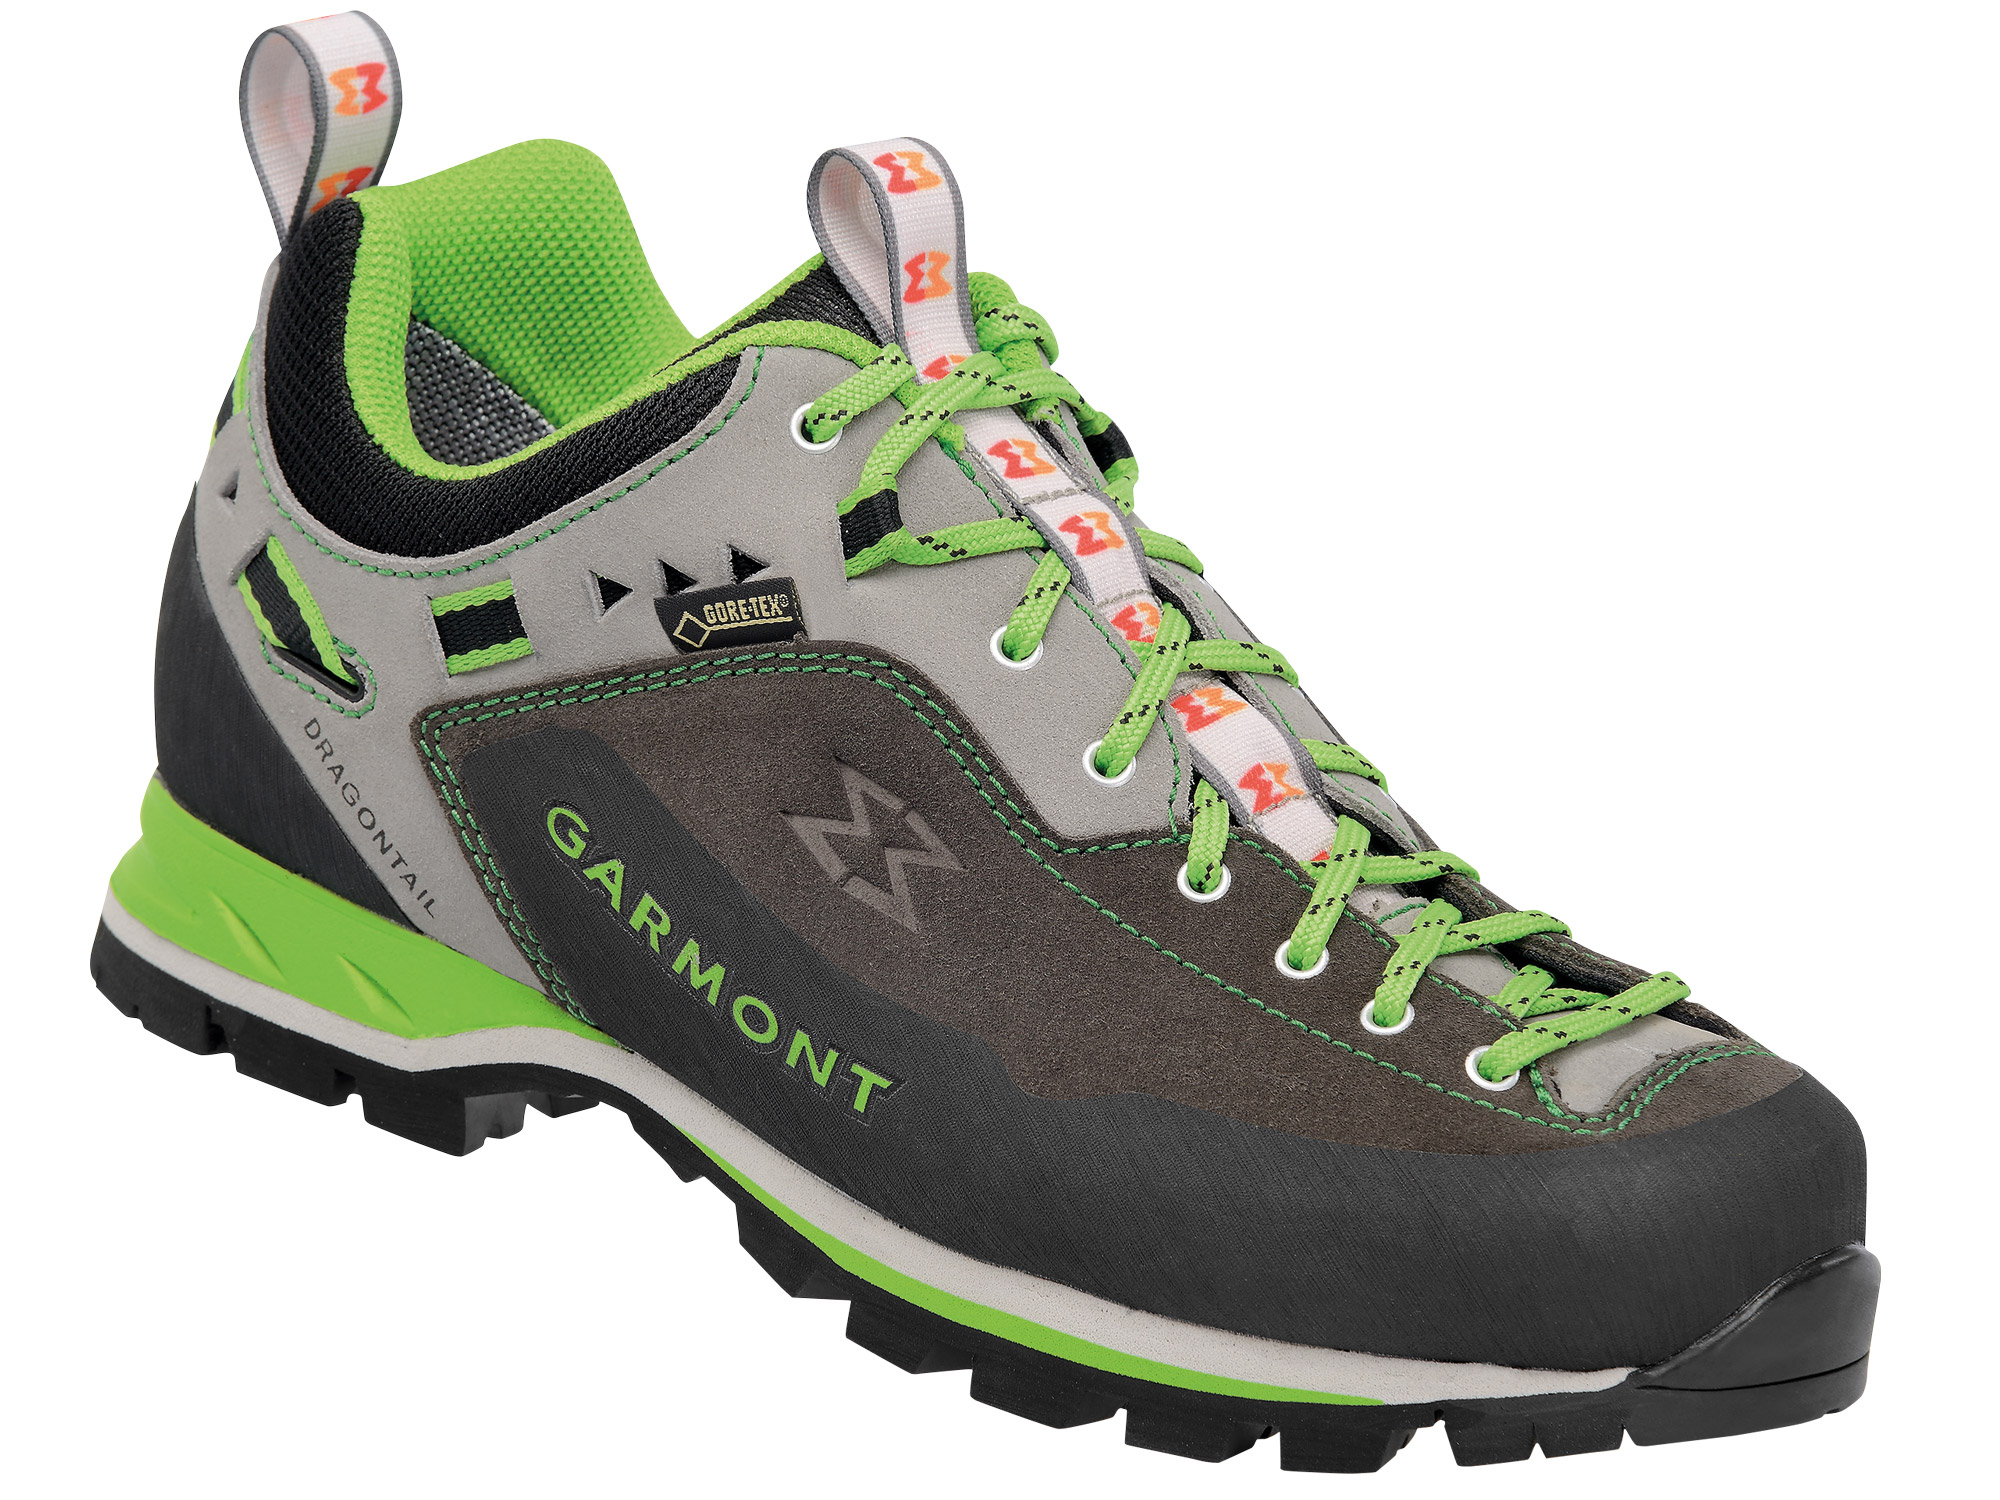 Garmont Dragontail Mnt Gtx Castelrock/Ciment-30